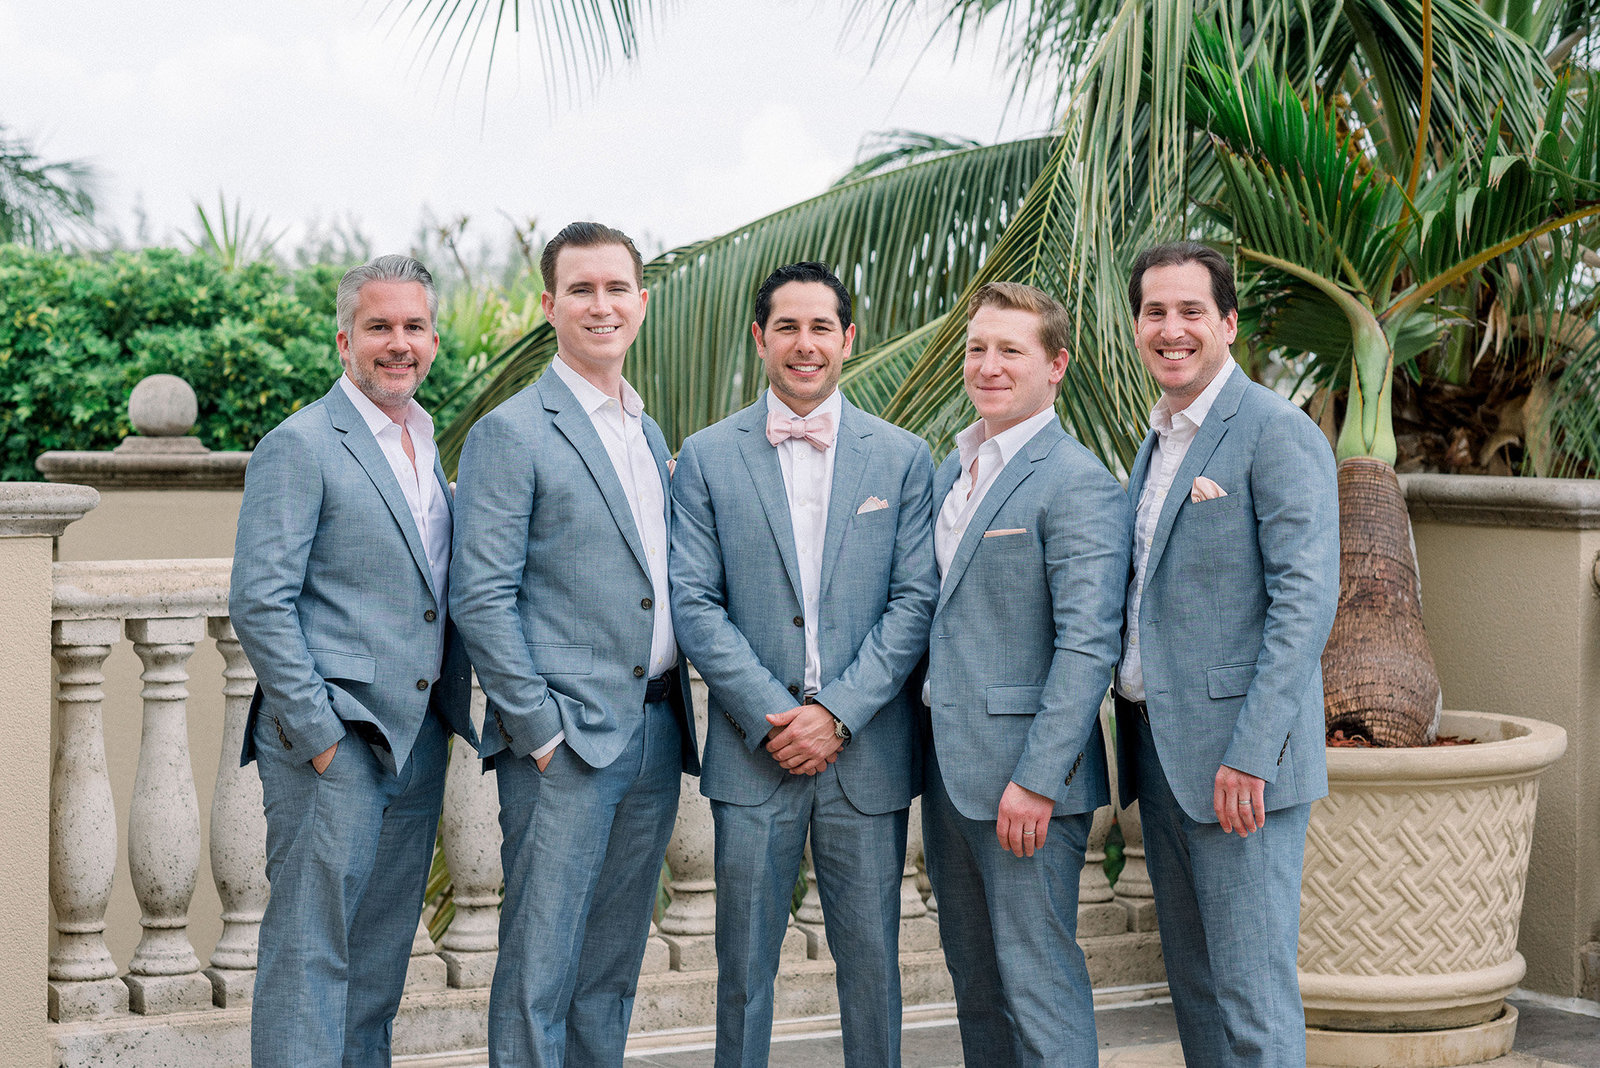 20180512-Pura-Soul-Photo-Ritz-Grand-Cayman-Wedding-49